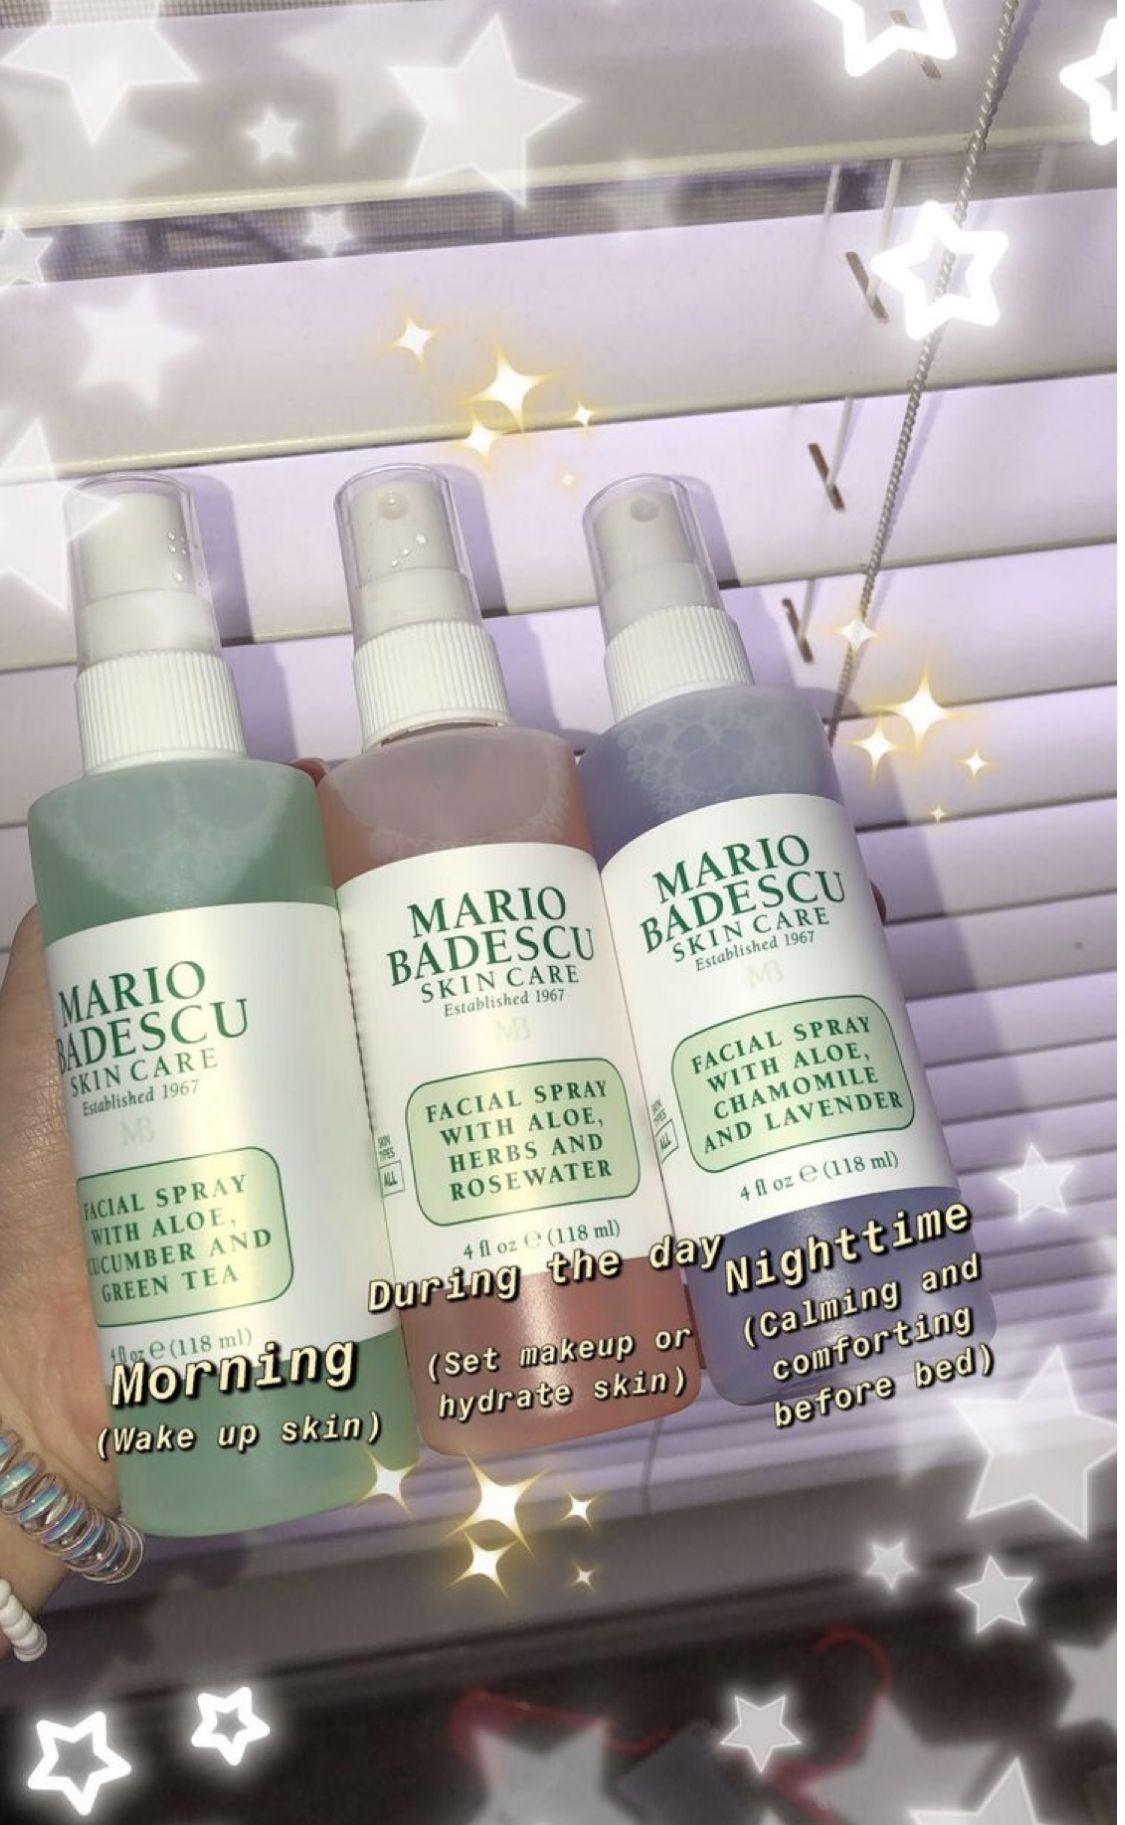 Mario Badescu Mario Badescu Facial Spray With Aloe